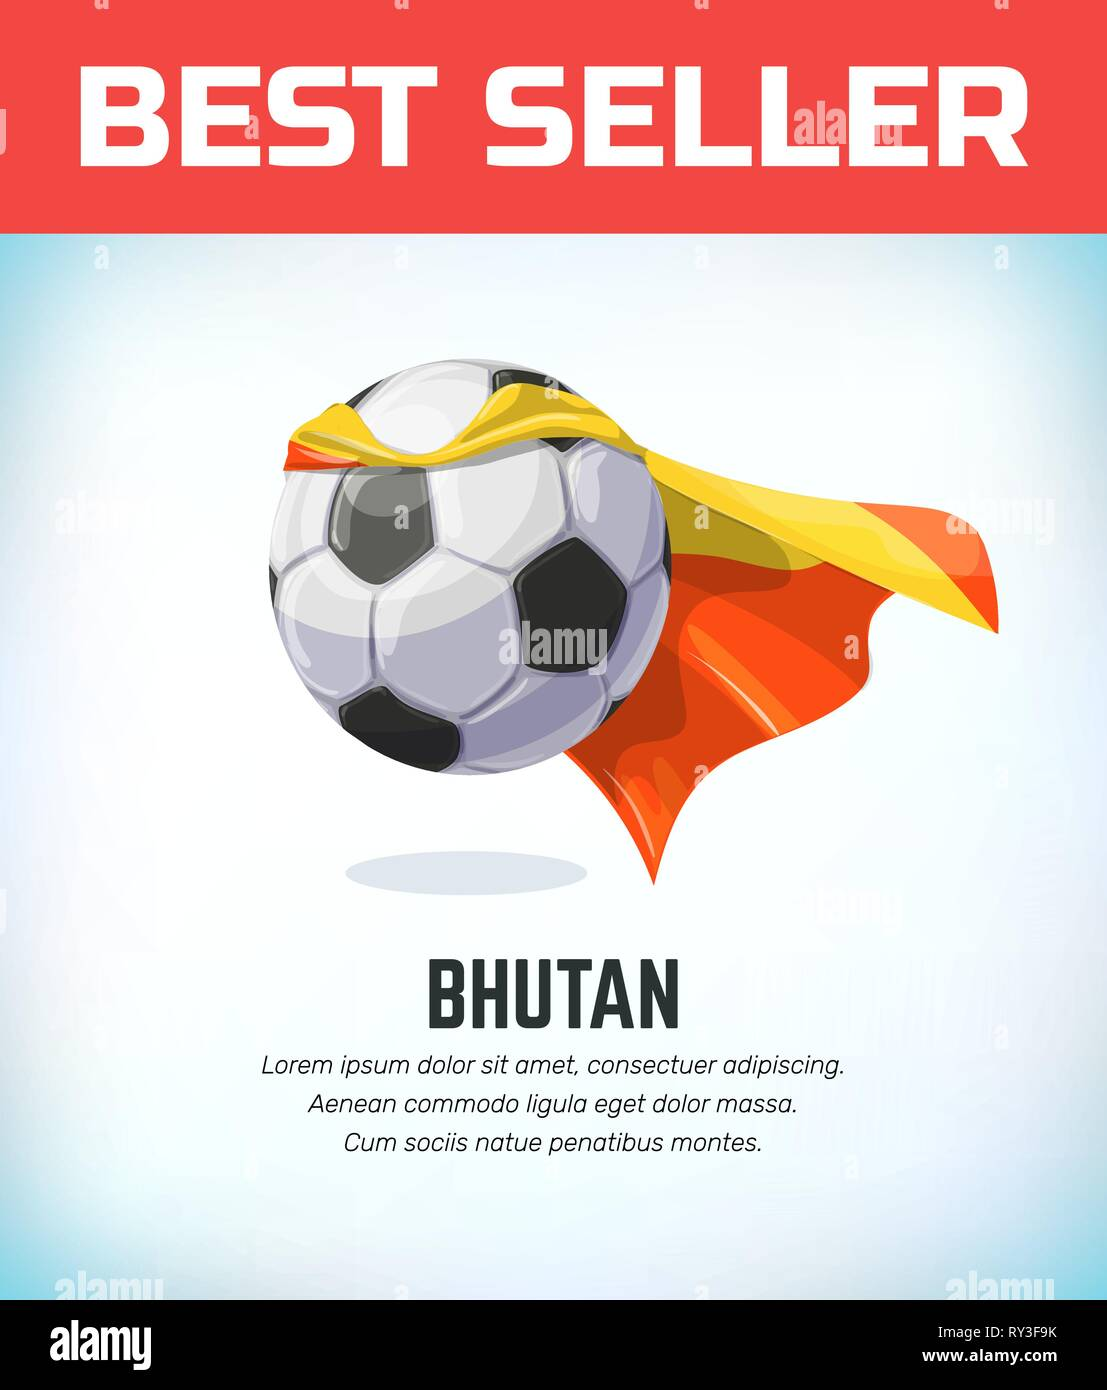 Bhutan football or soccer ball. Football national team. Vector illustration. - Stock Vector